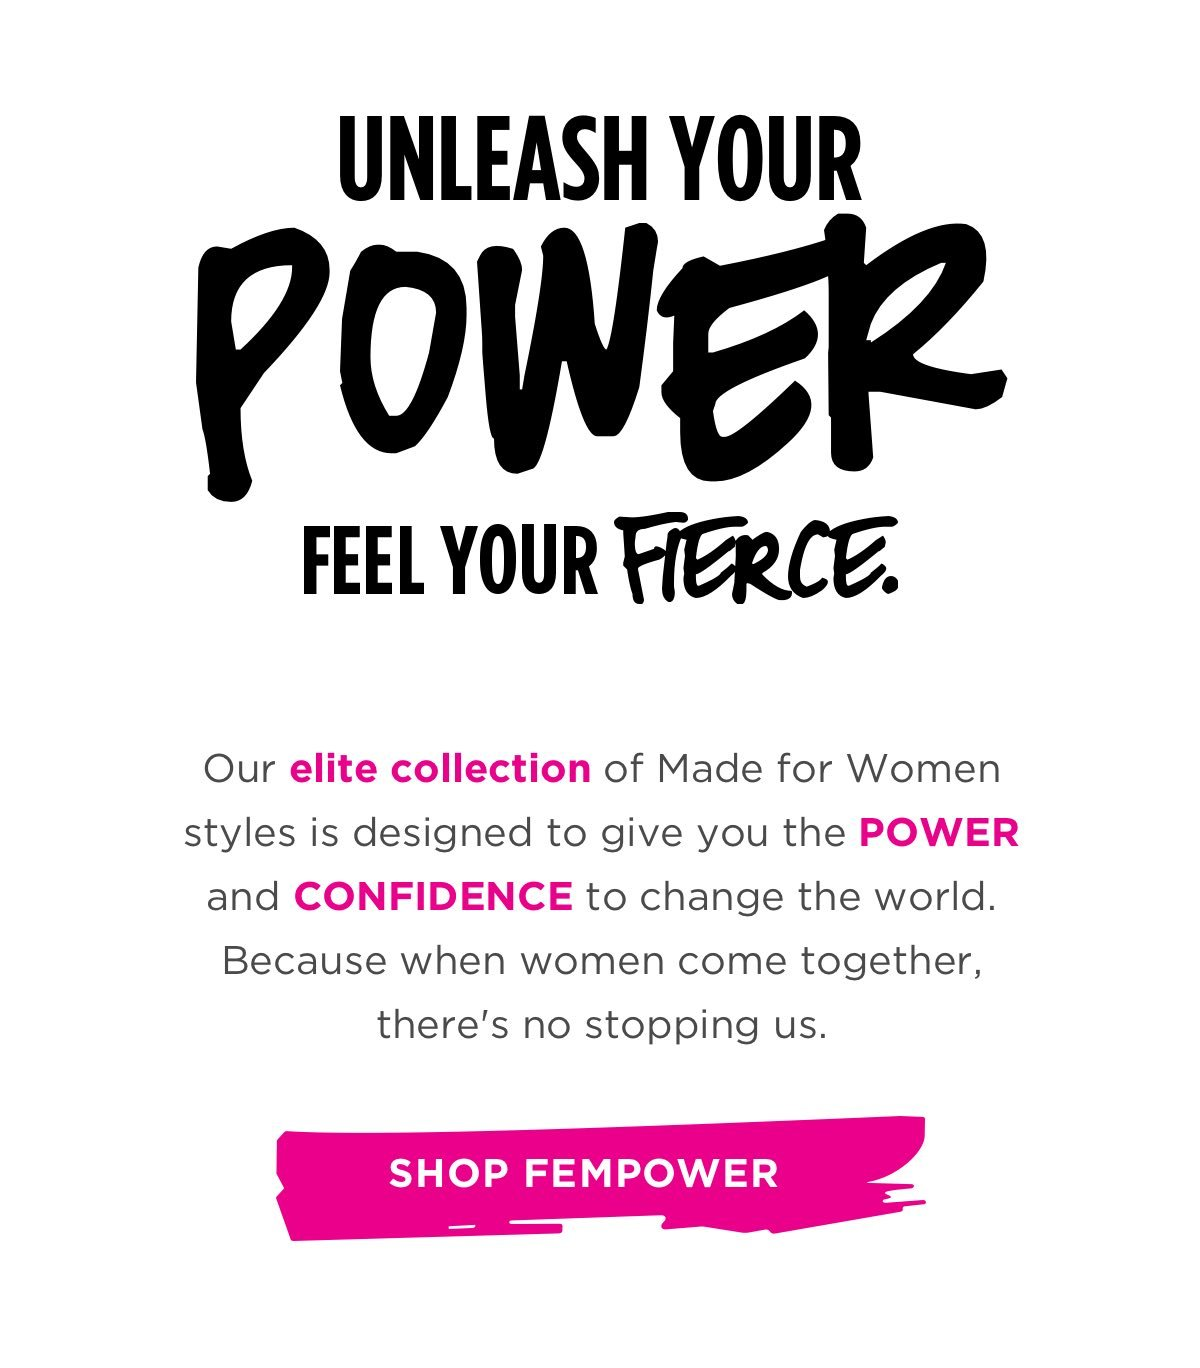 Our elite collection of Made for Women style. SHOP fEMPOWER.